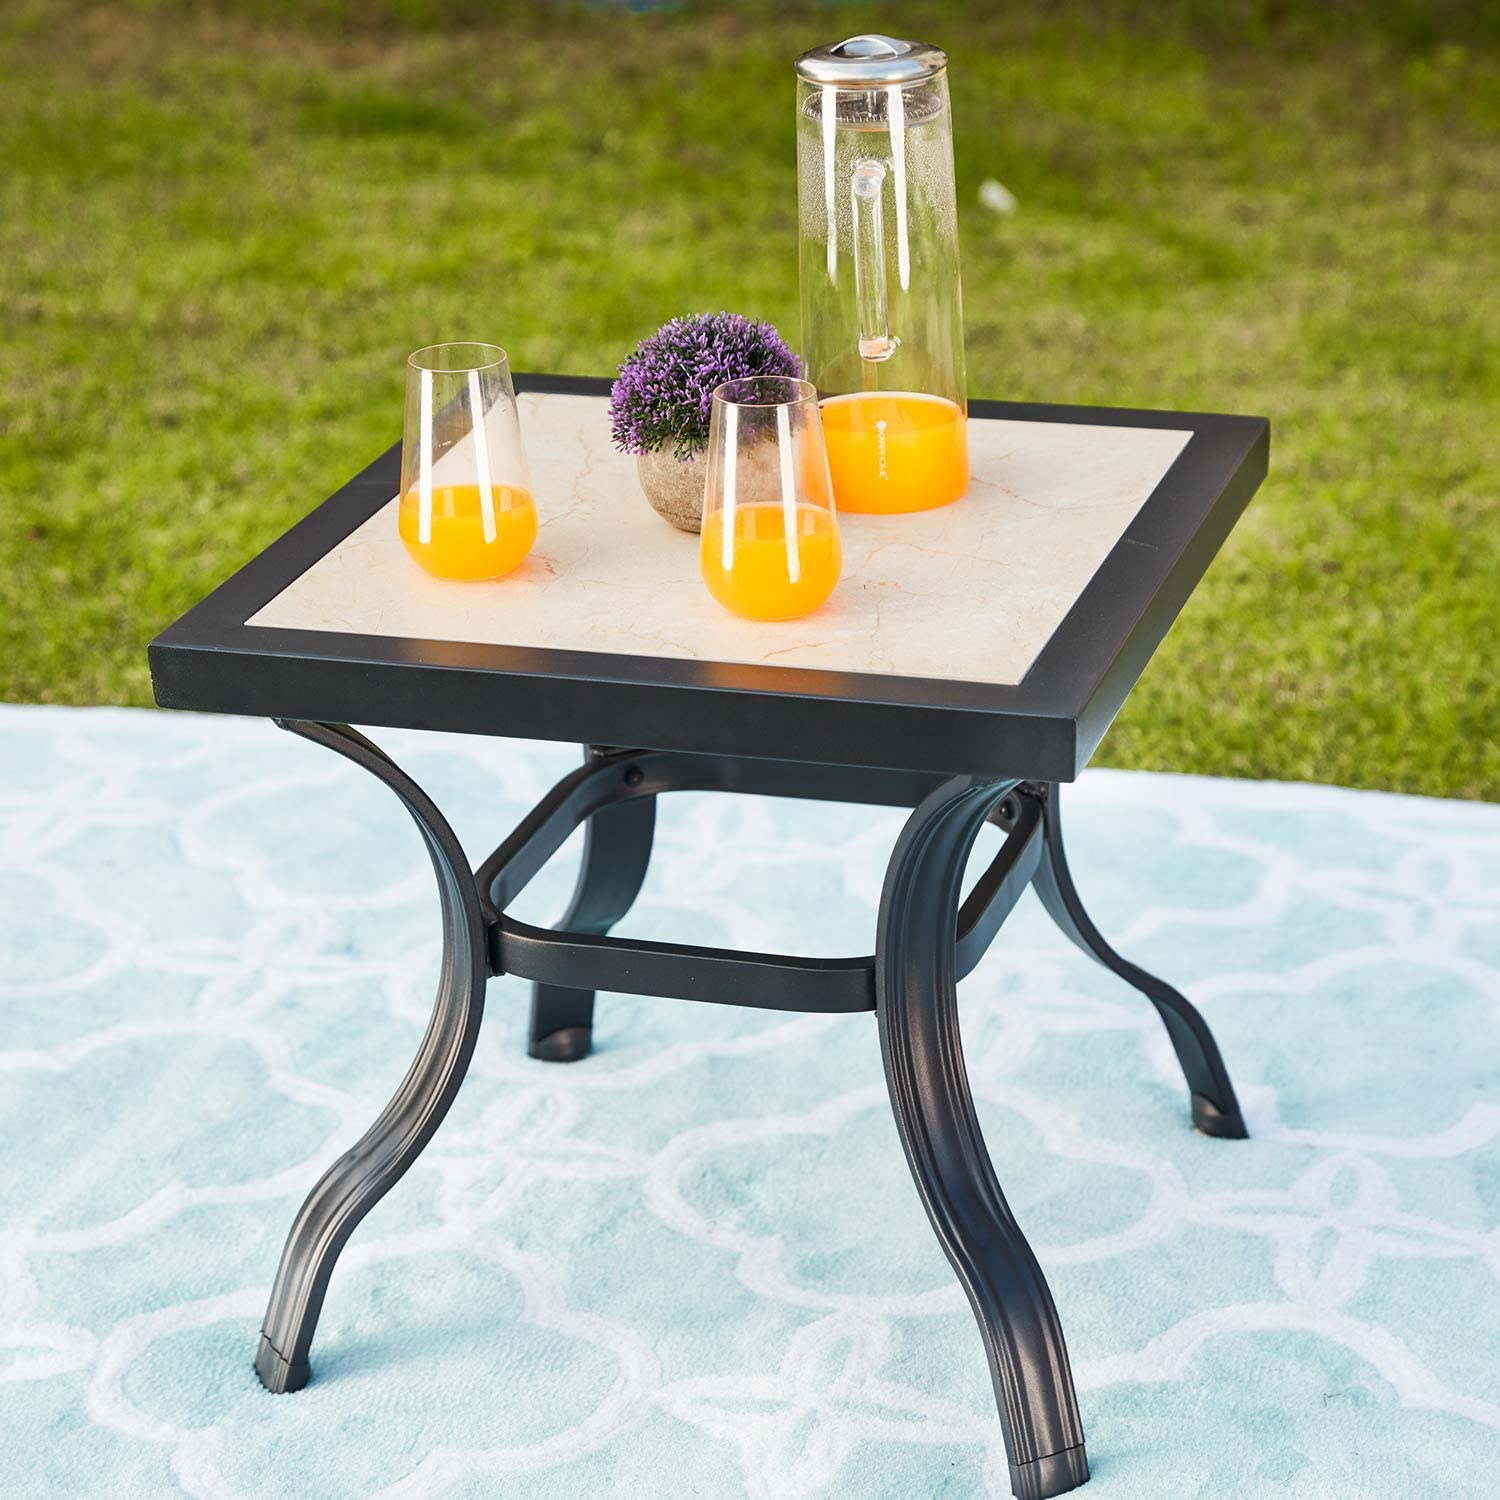 """Festival Depot 21"""" Metal Outdoor Side Table Patio Bistro Square Dining Table Off-White Ceramics Top with Steel Legs (20.9""""x 20.9""""x 19.7""""H)"""